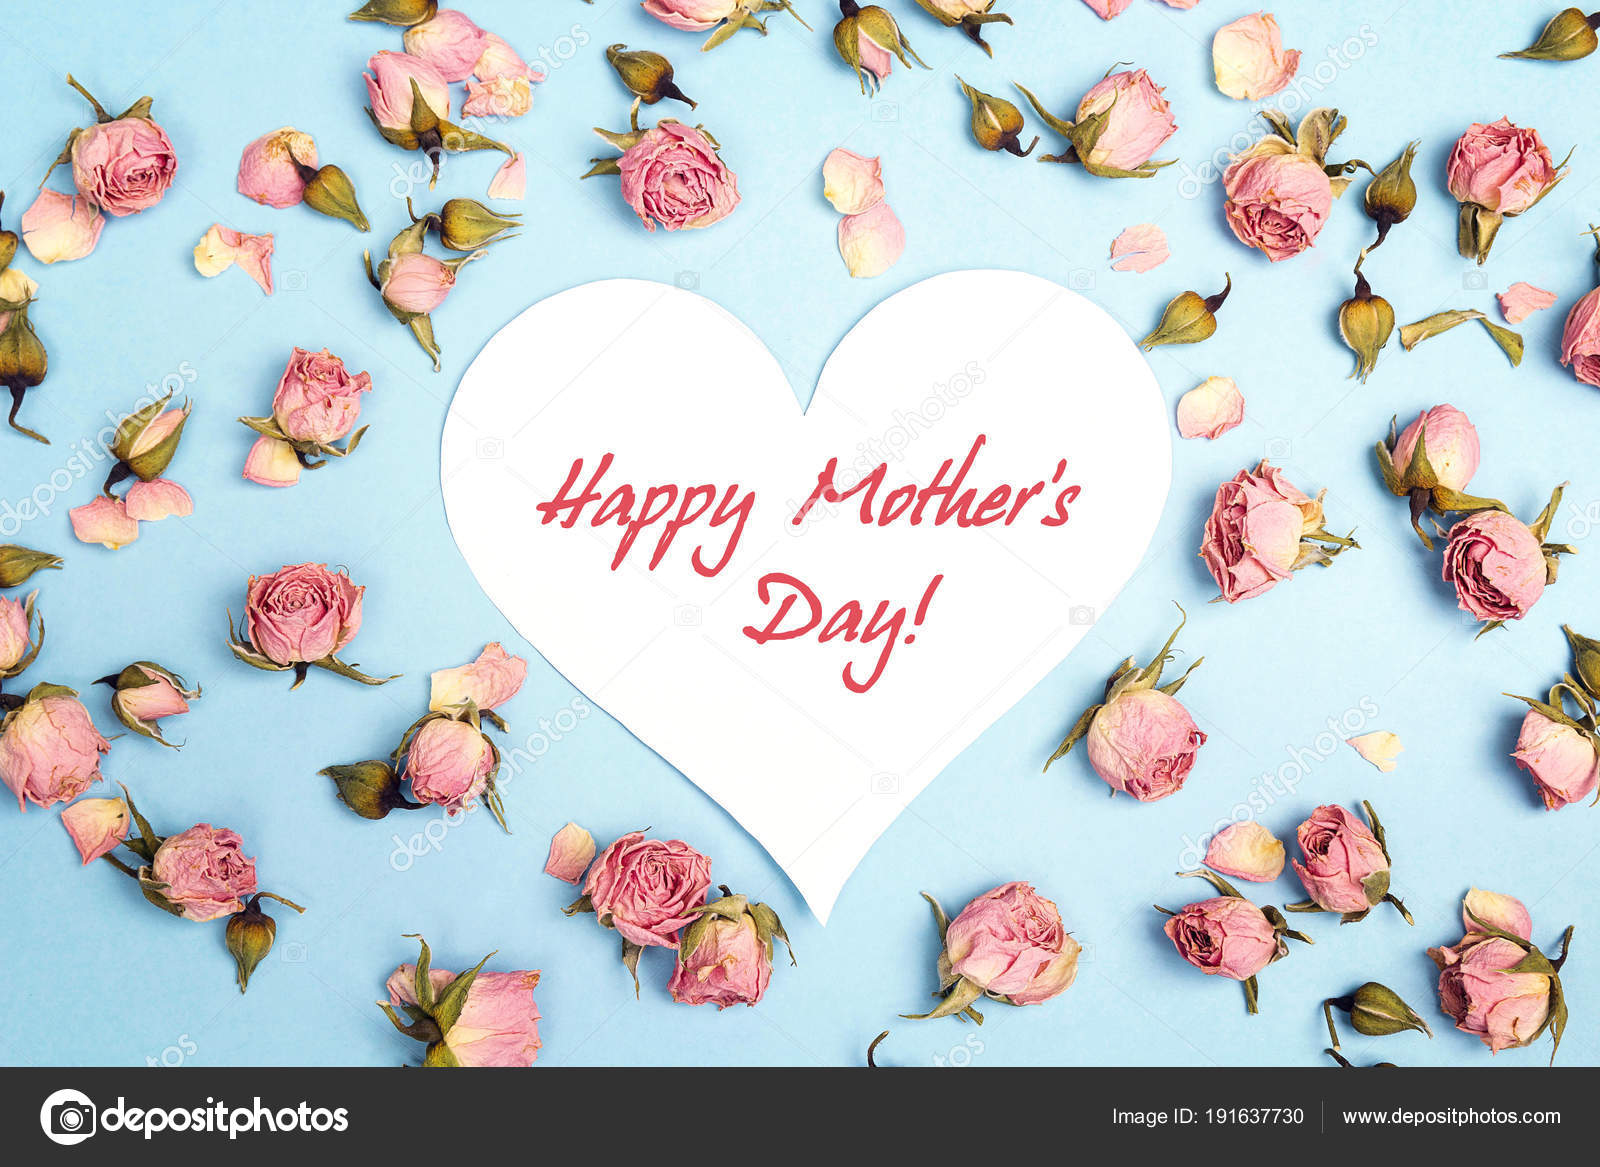 Mothers Day Greeting Message With Small Pink Roses On Blue Backg